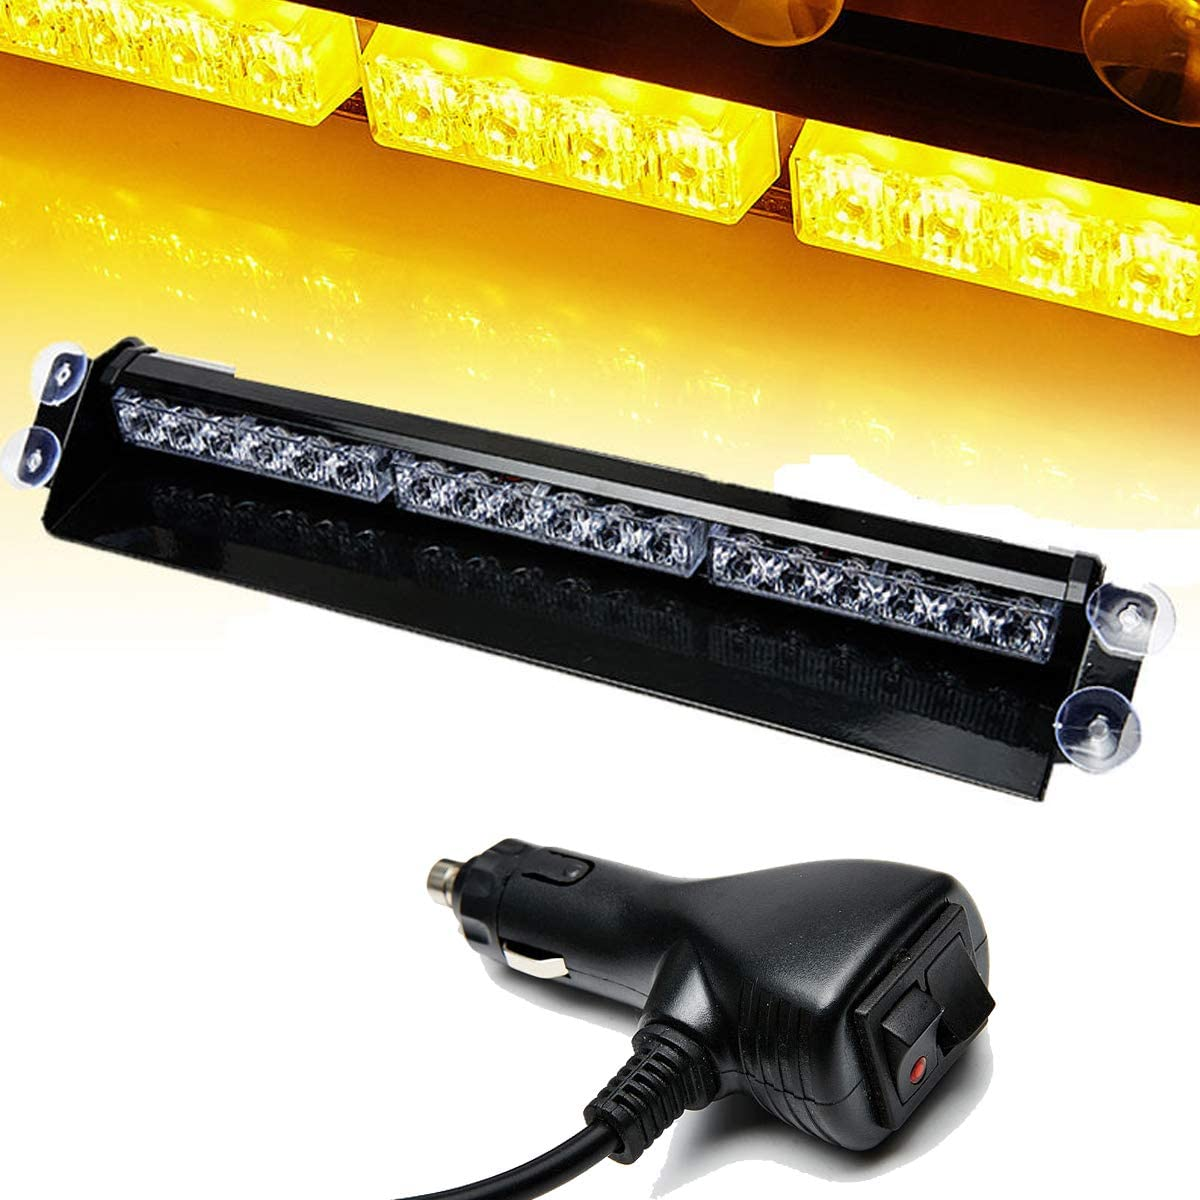 SMALLFATW 12 LED 7 Flash Patterns High Intensity Emergency Vehicles Trucks Warning Traffic Advisor Strobe Light Mini Bar Fit for Dash//Interior Roof//Windshield with Suction Cups Amber